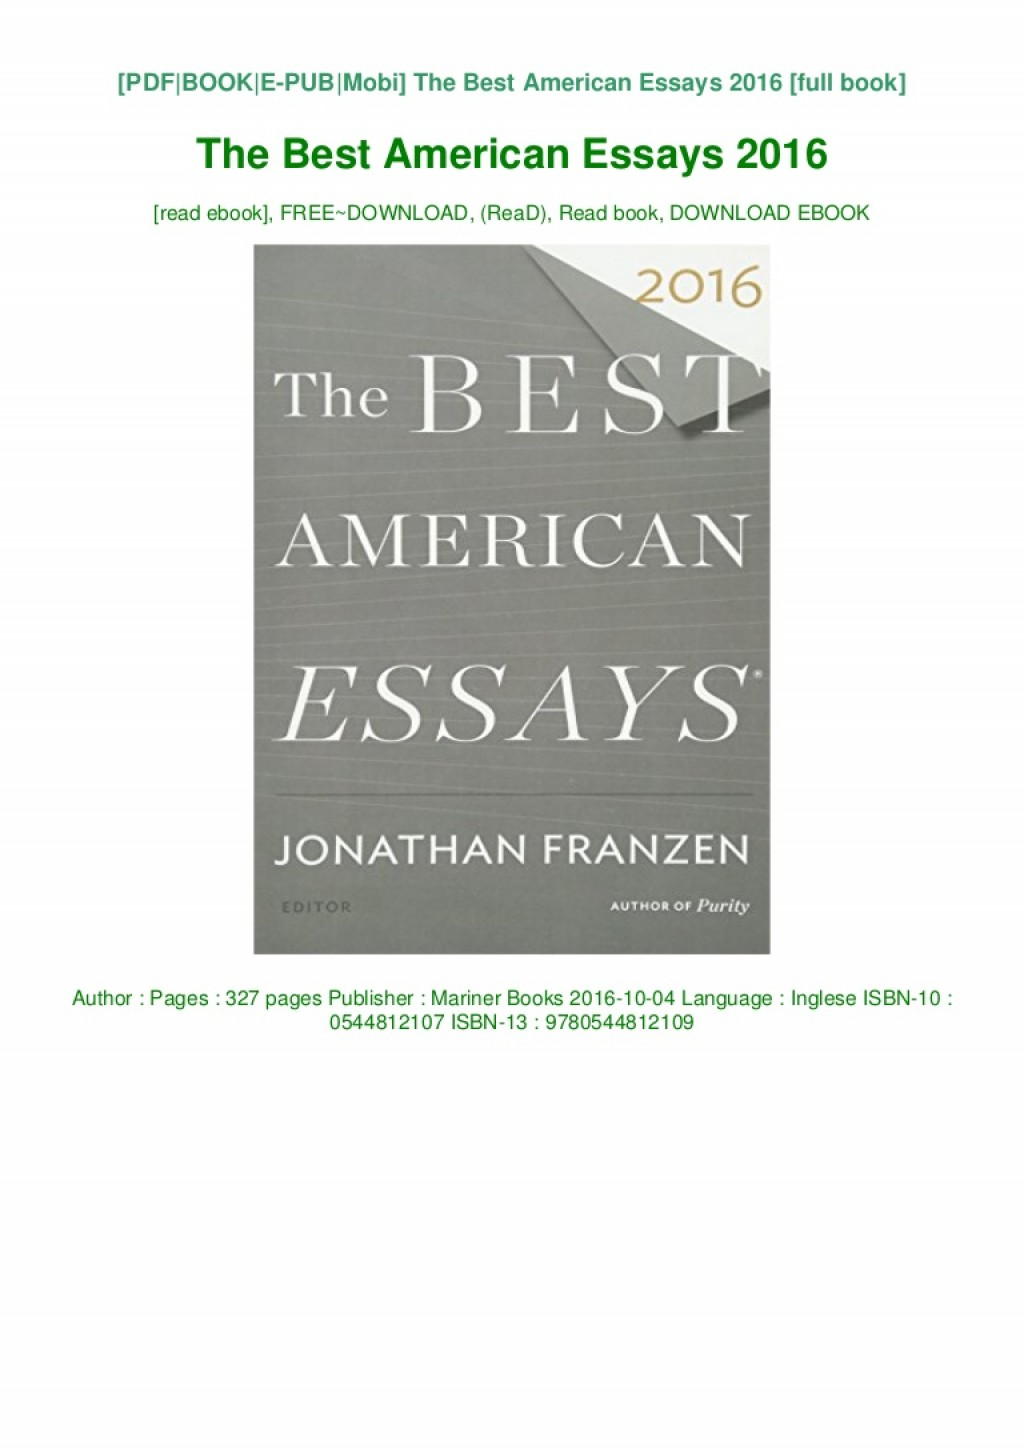 013 Download The Best American Essays Pdf Epub Audiobook Ebook Thumbnail Essay Striking 2017 Submissions 2019 Of Century Table Contents Large